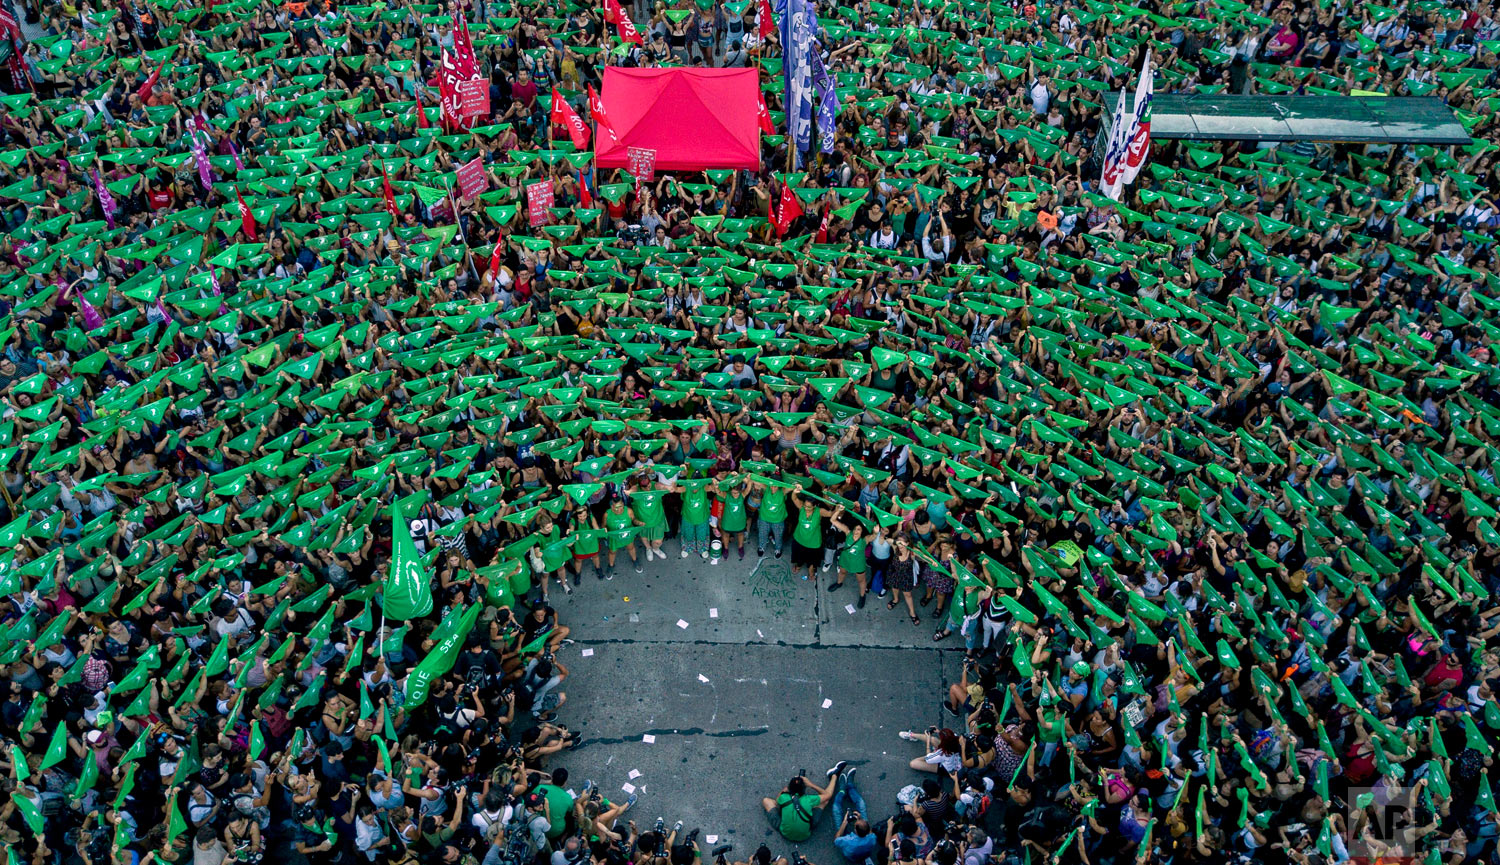 Pro-choice activists in favor of decriminalizing abortion raise green handkerchiefs as they rally outside Congress in Buenos Aires, Argentina, Feb. 19, 2019. (AP Photo/Tomas F. Cuesta)